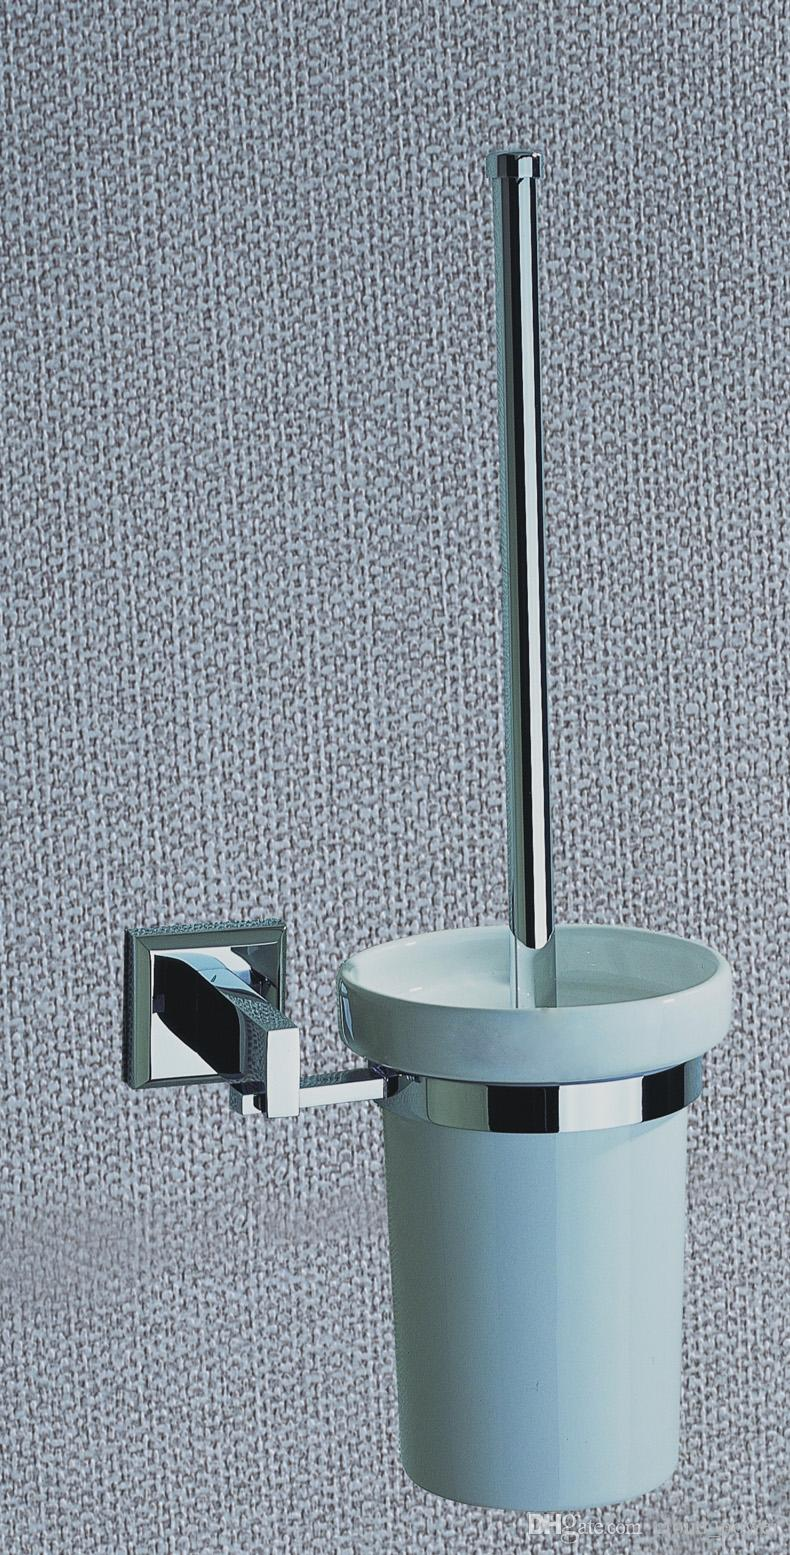 2017 chrome plated brass toilet brush holder with ceramic - Chrome plated brass bathroom accessories ...